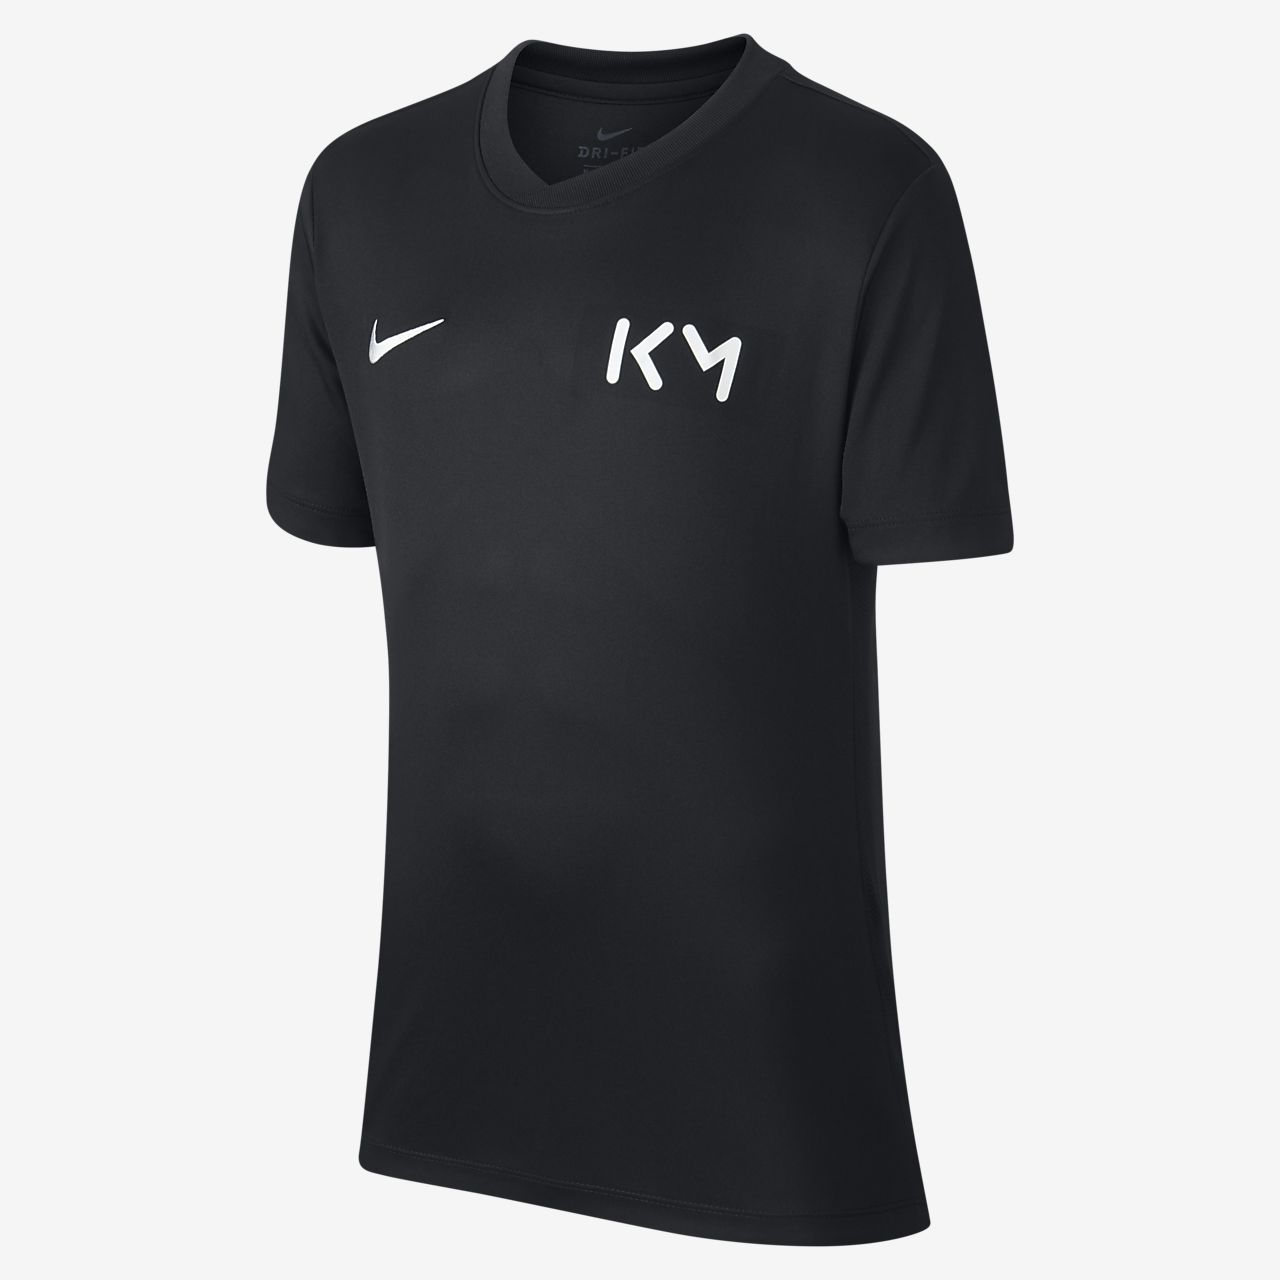 Kylian Mbappé Older Kids' Football Shirt